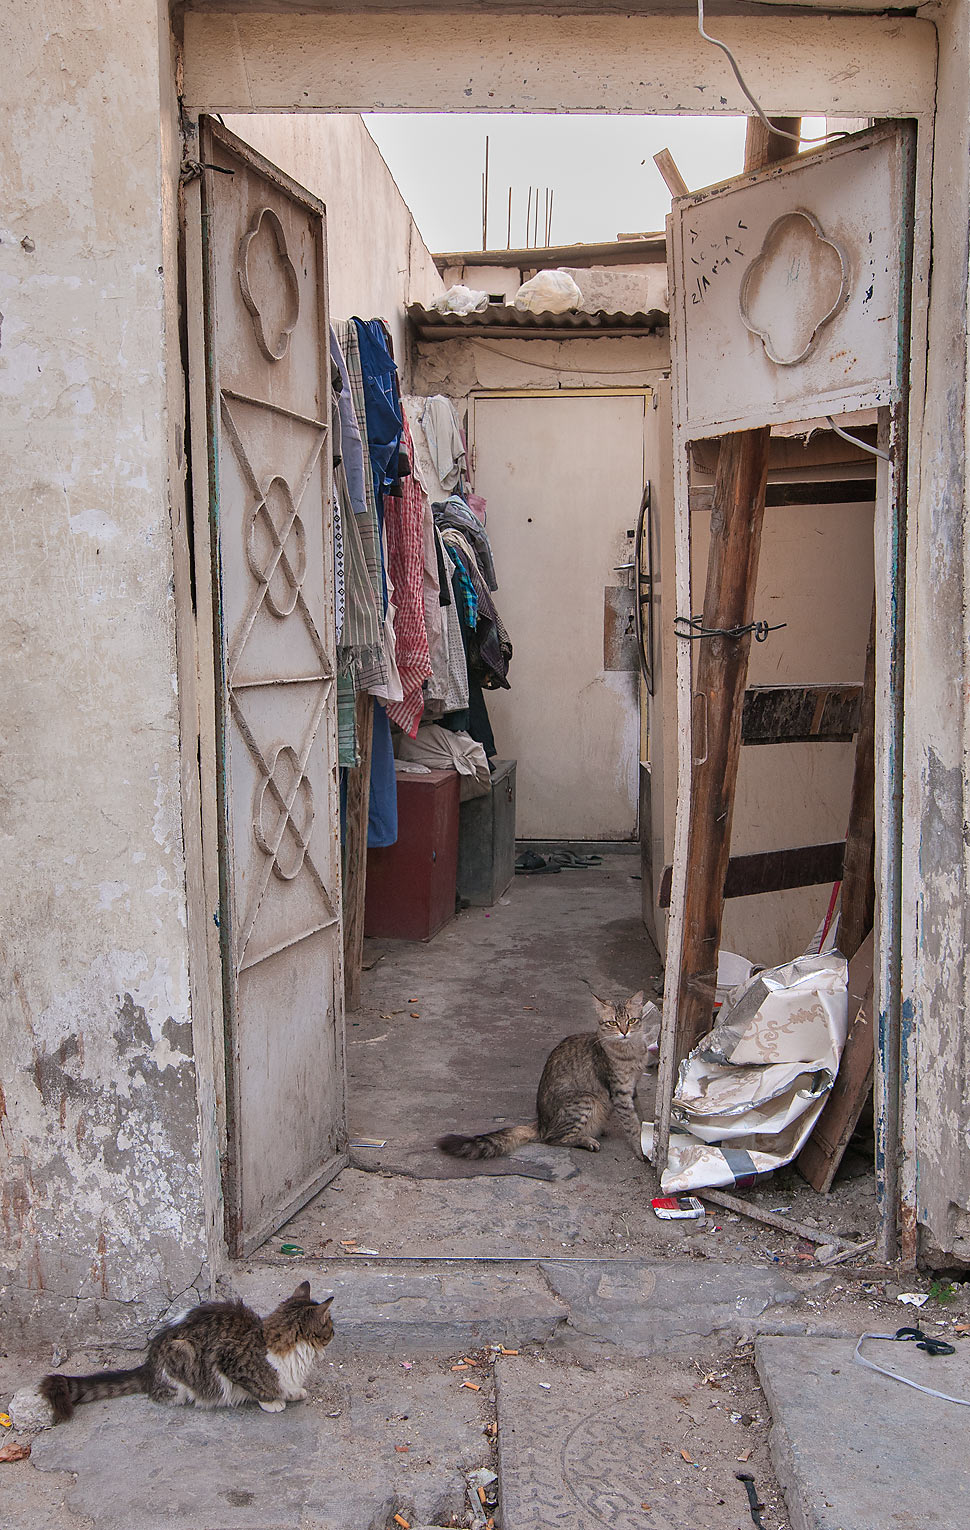 Cats sitting on doorway on Umm Wishah St., Musheirib area. Doha, Qatar